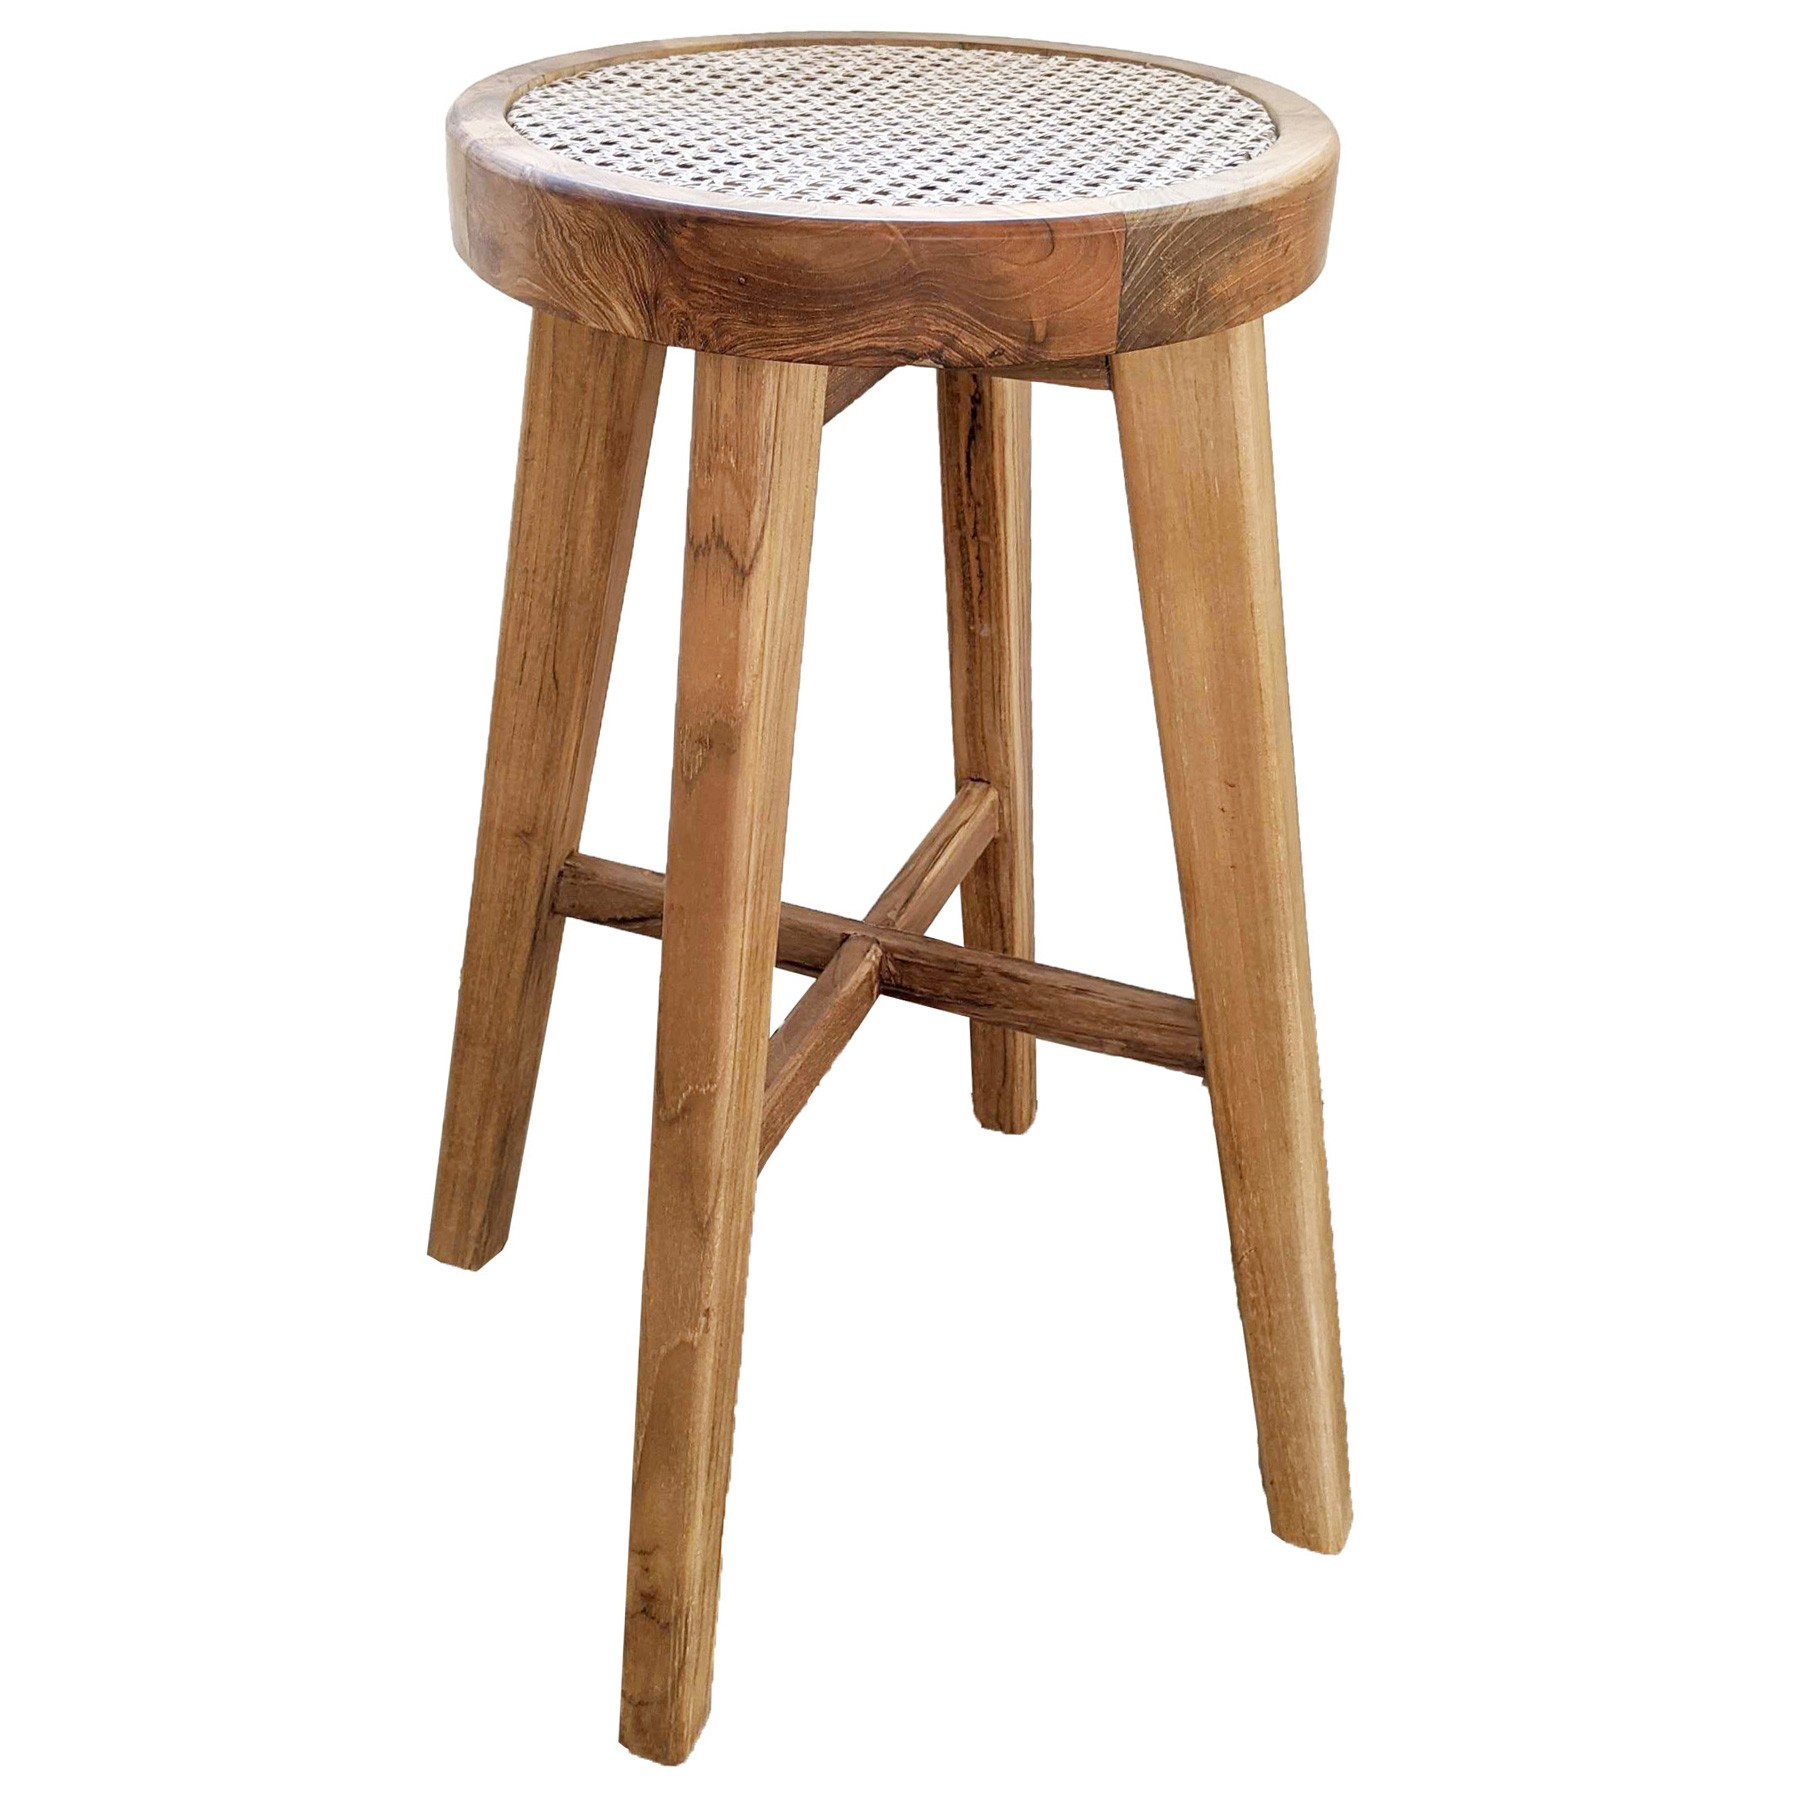 Cleo Commercial Grade Teak & Rattan Counter Stool